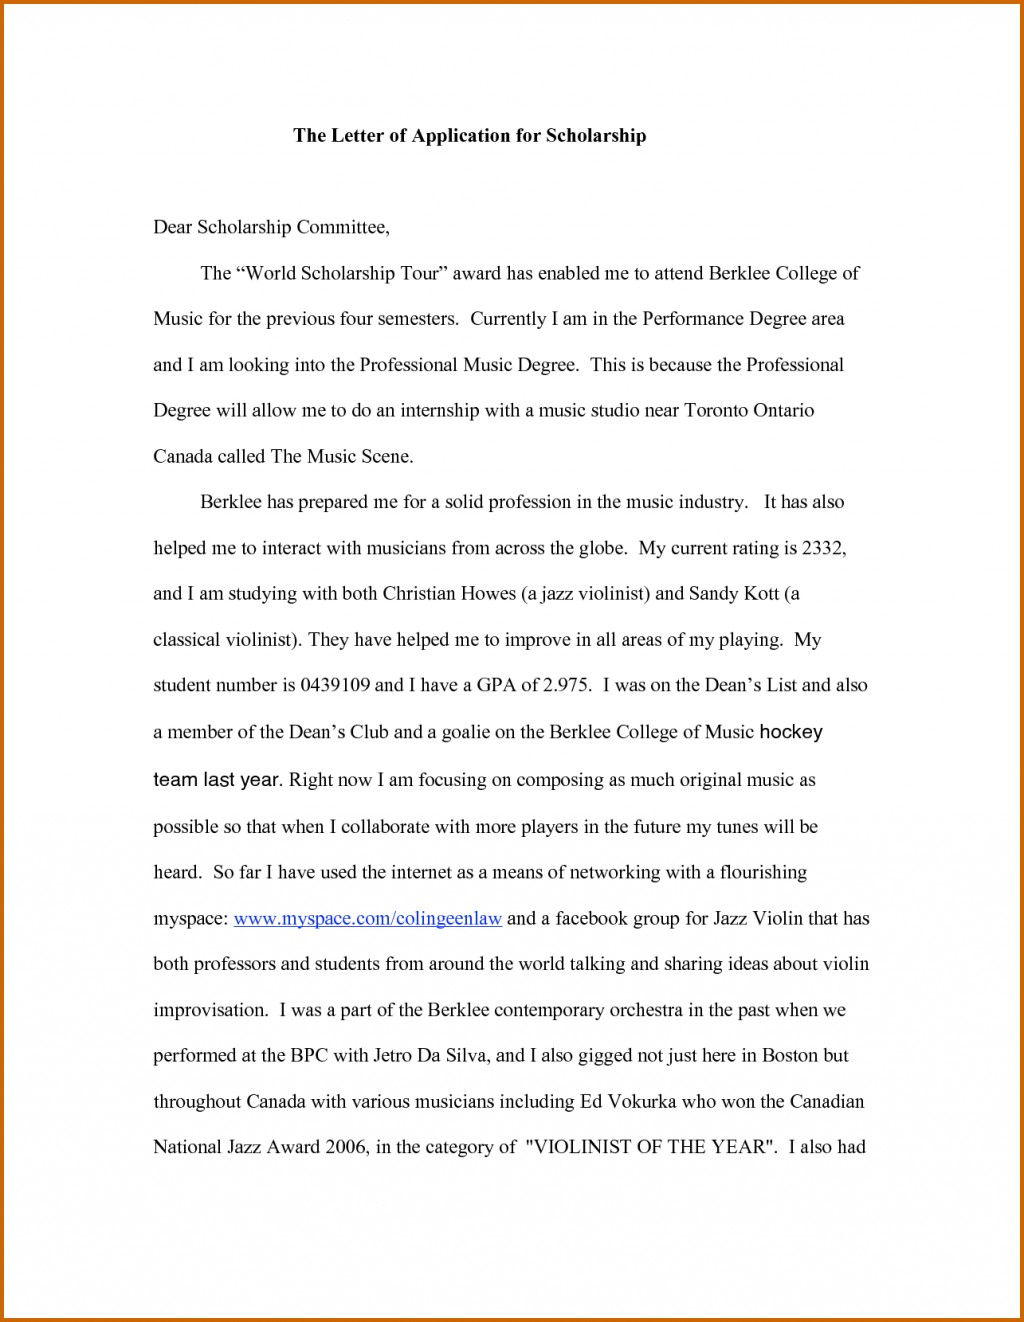 007 Scholarships Without Essay Example How To Write Application For Scholarship Astounding Essays 2019 2018 Large